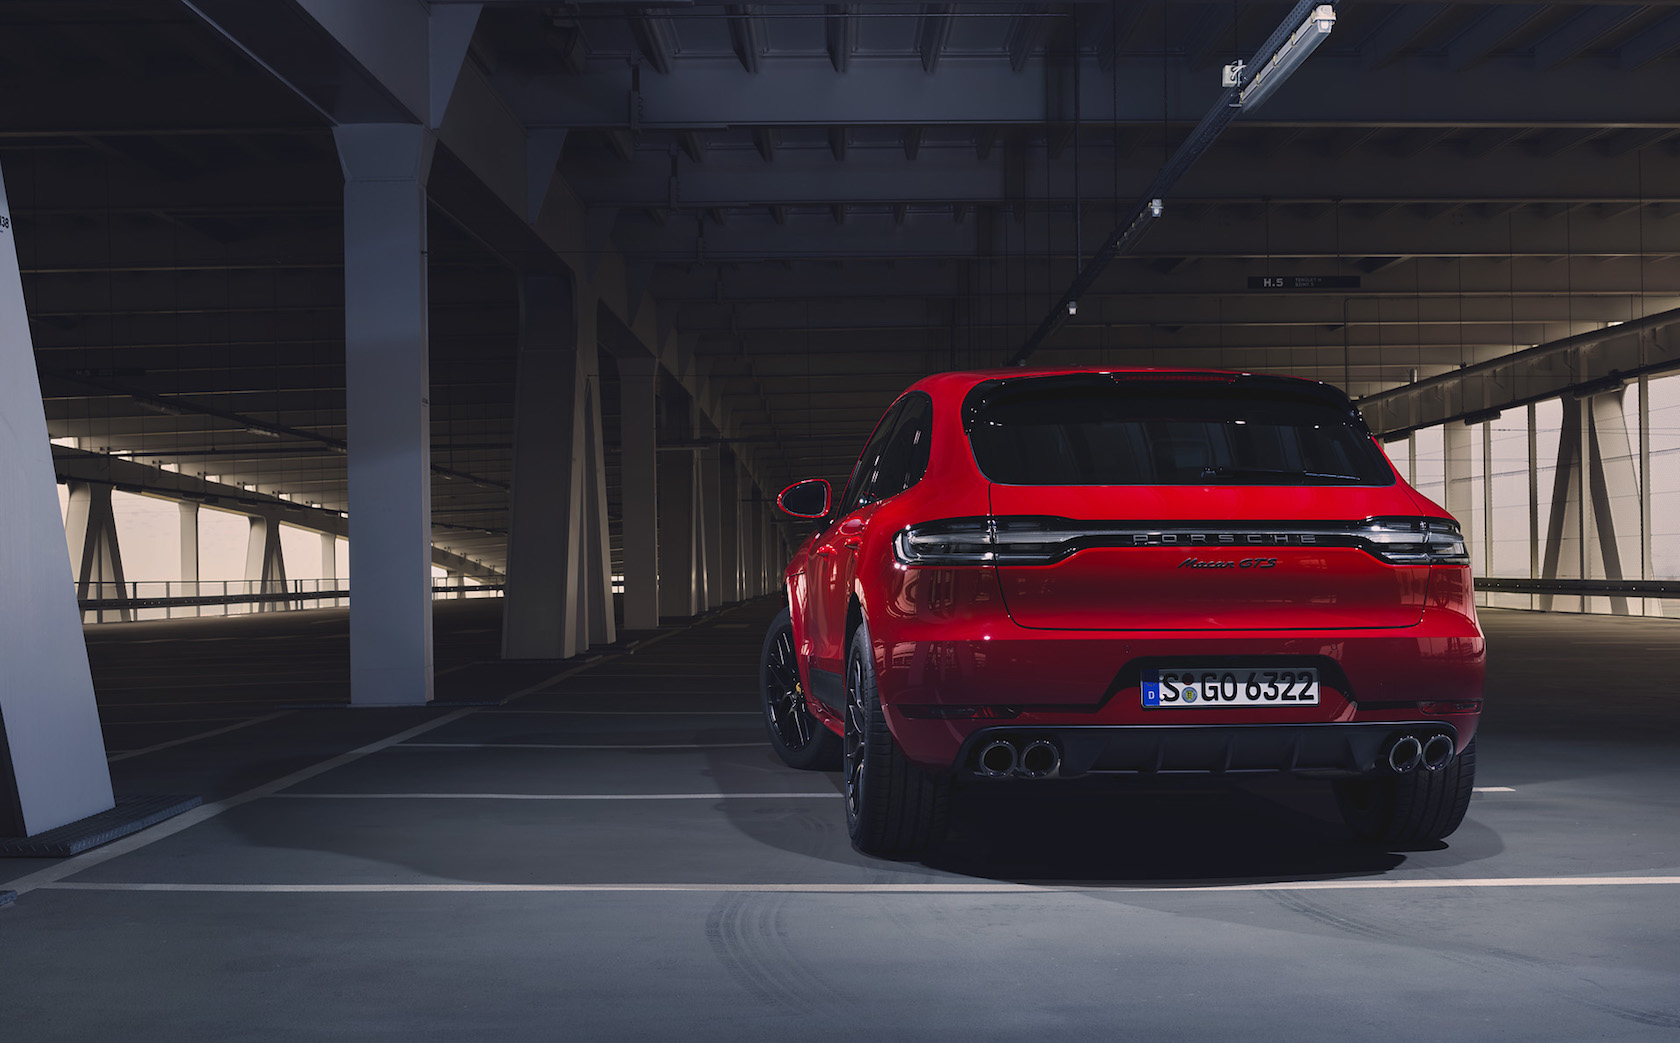 2020 Porsche Macan GTS returns with more power on tap